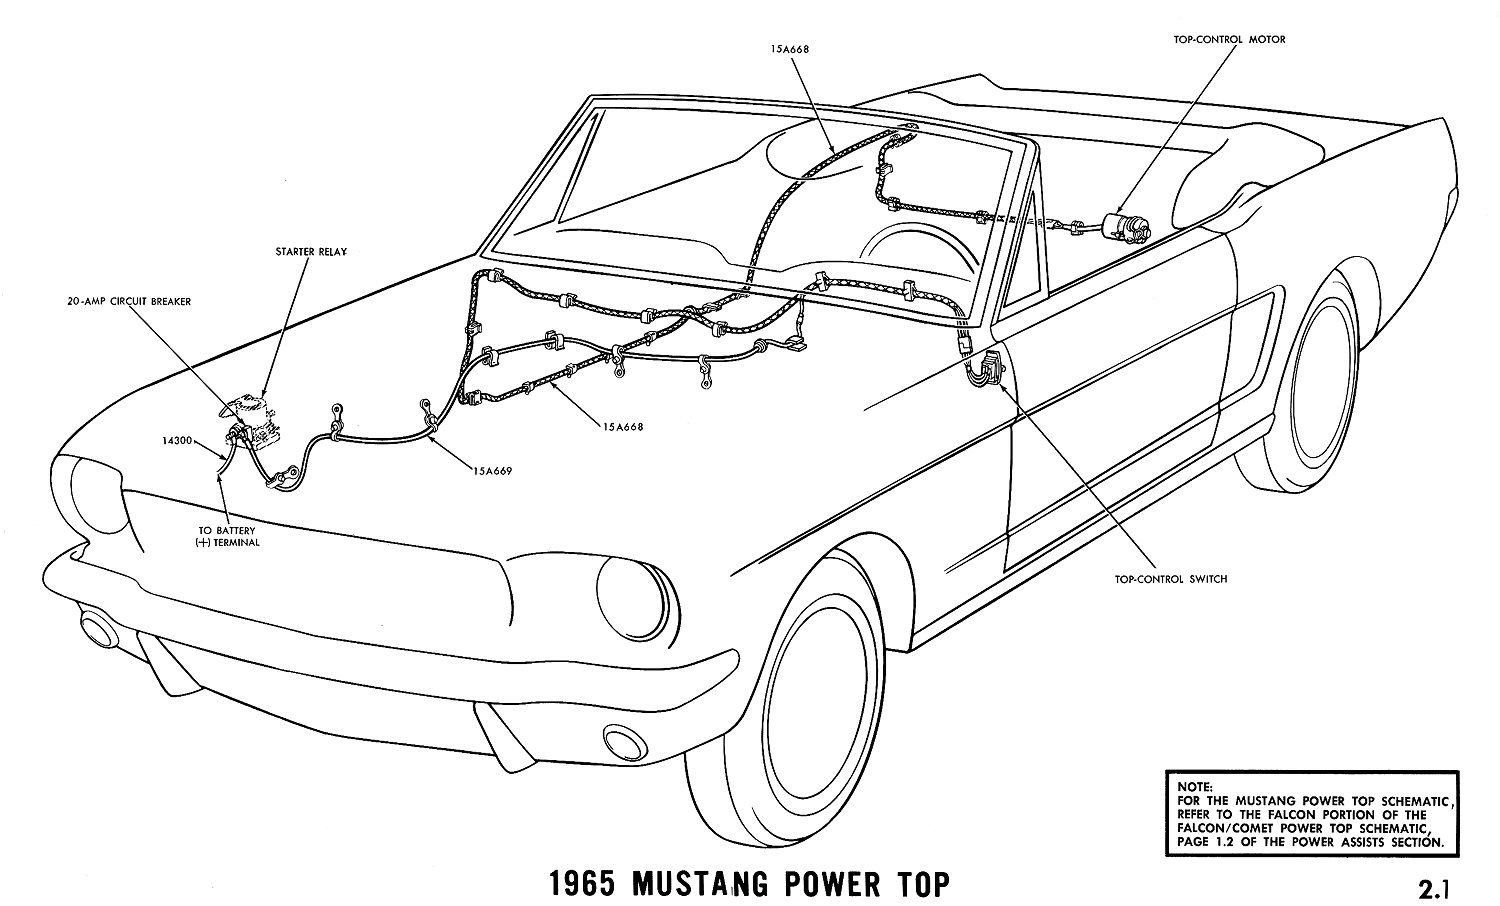 65 Mustang Wiper Wiring Diagram Detailed Schematics Diagram 1965 Mustang  Wiring Diagram For Lighting 1965 Mustang Color Wiring Diagram